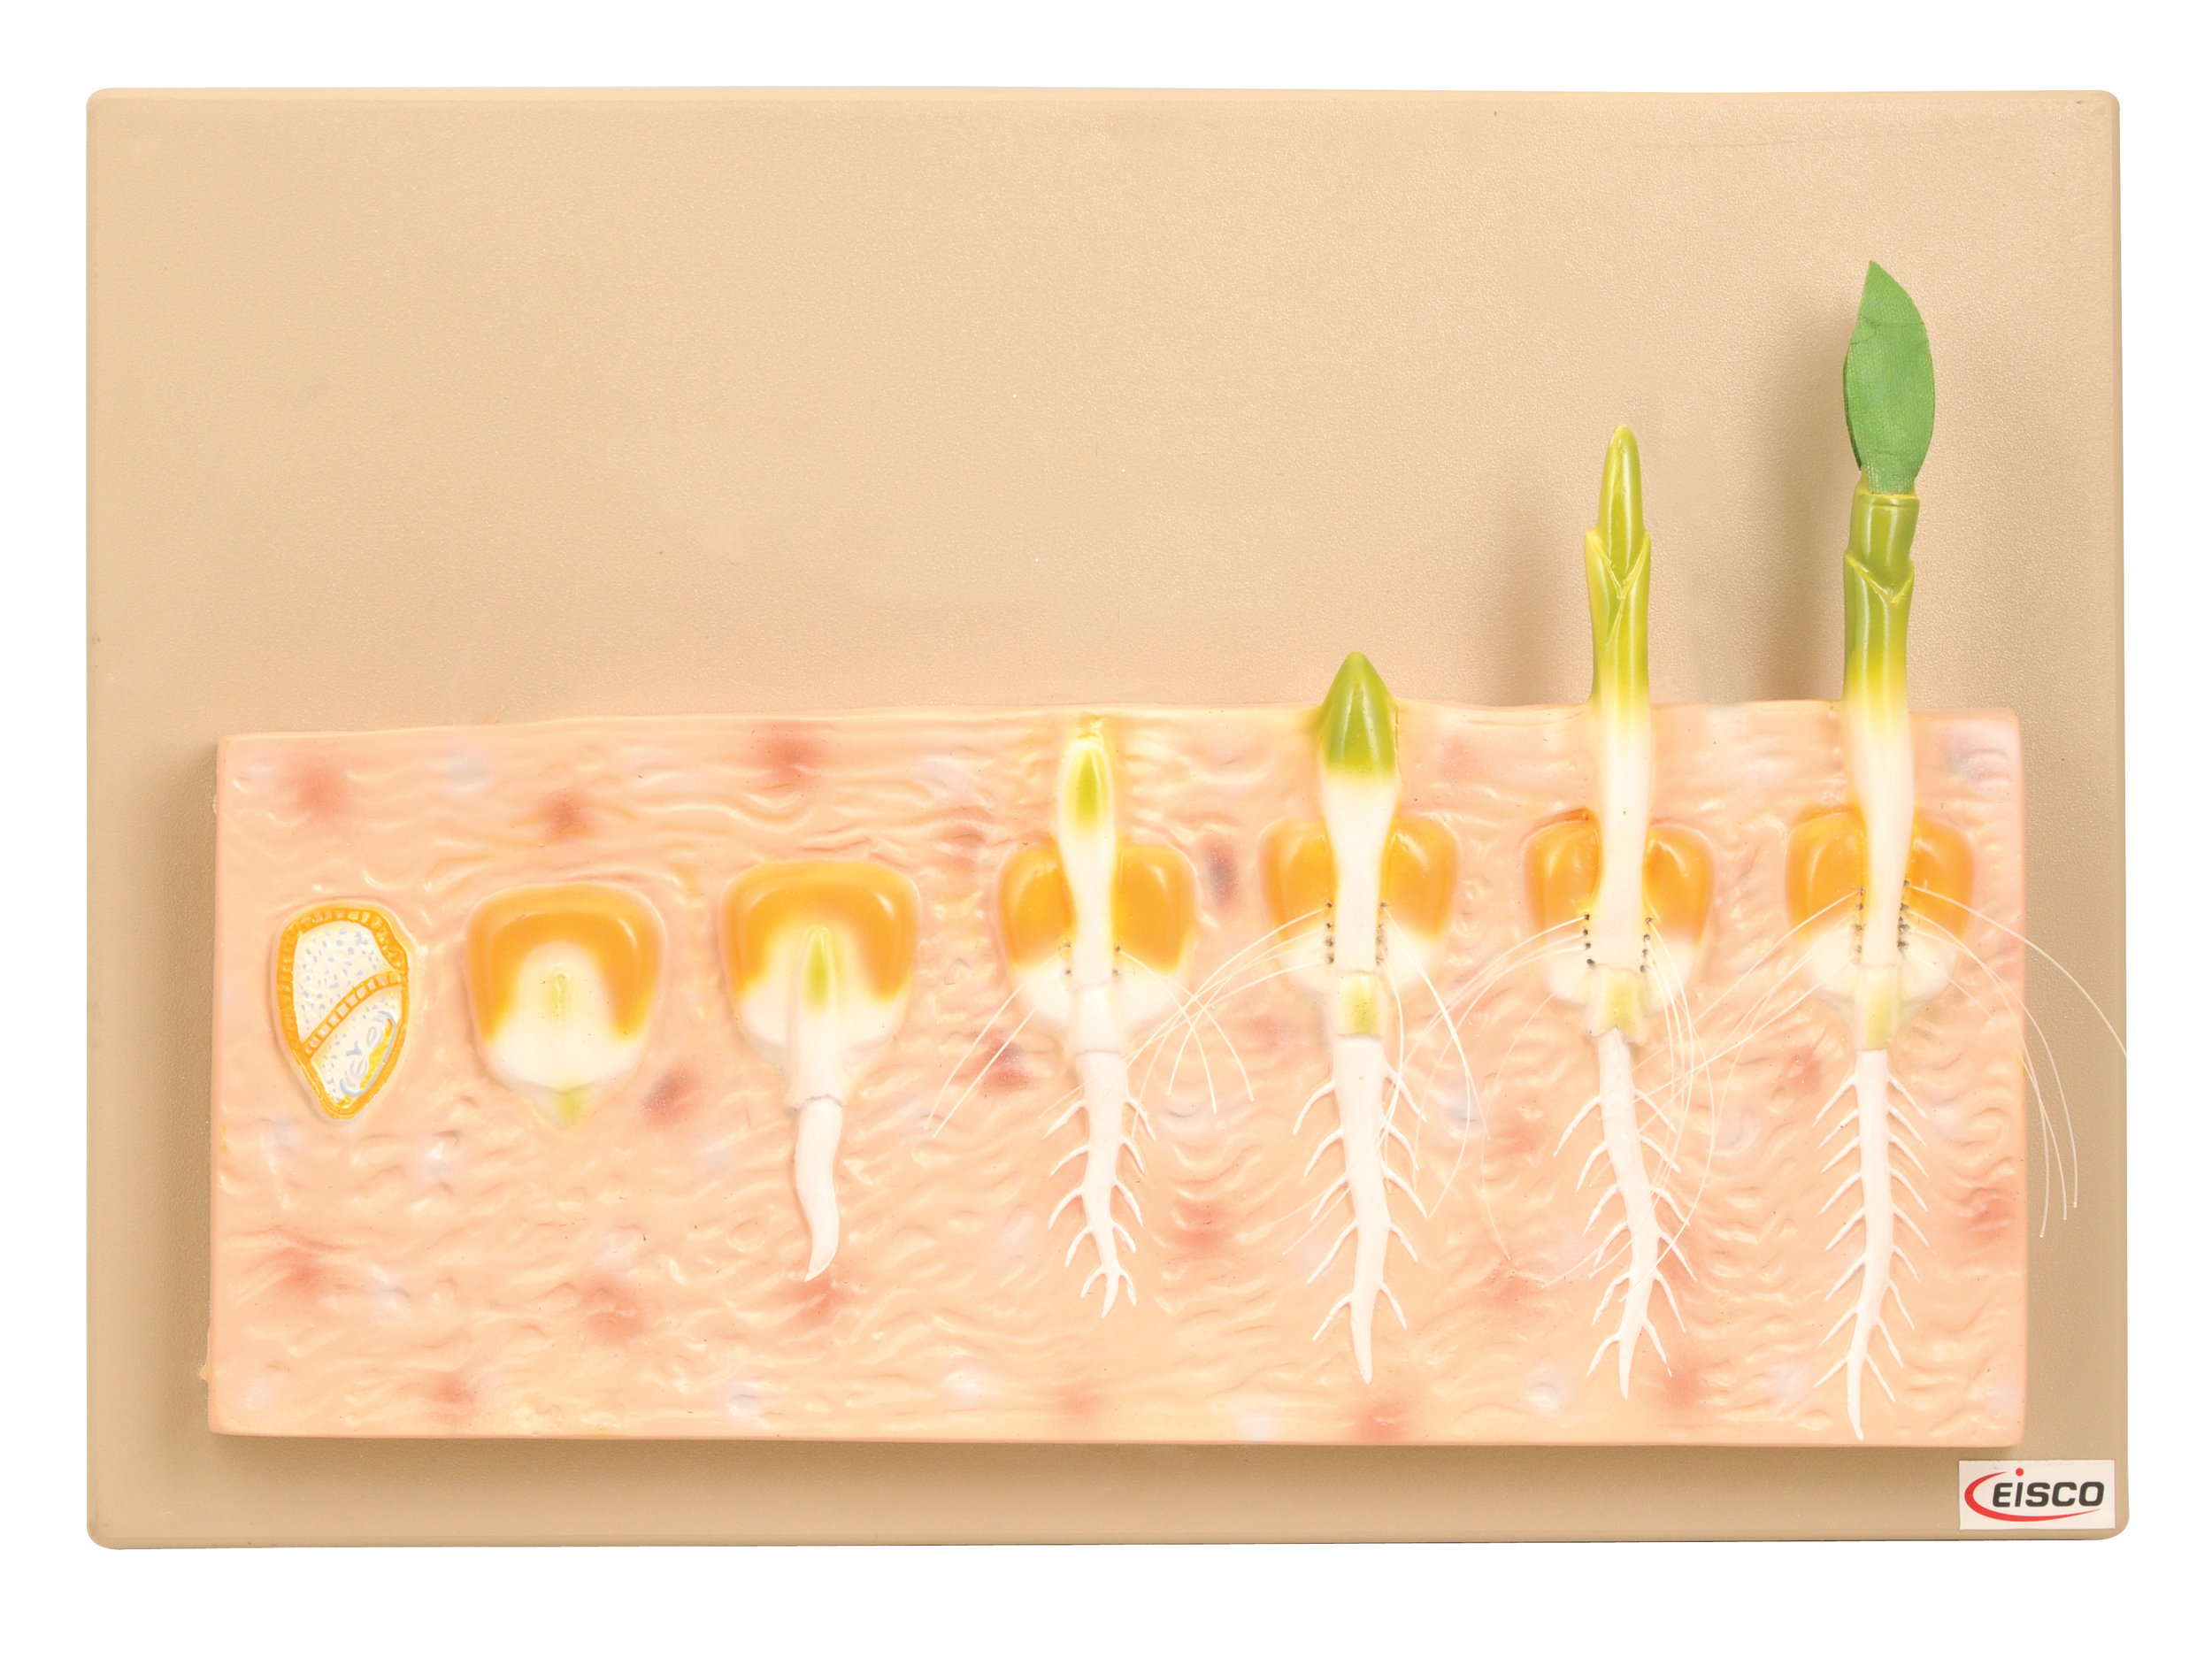 SEED GERMINATION - MONOCOT - Code: BM0044Price: $35.00· Model shows germination of monocot, Maize plant· Stages in development numbered· Key Card included· Size: 42cm x 30cm x 7cm (approx.)